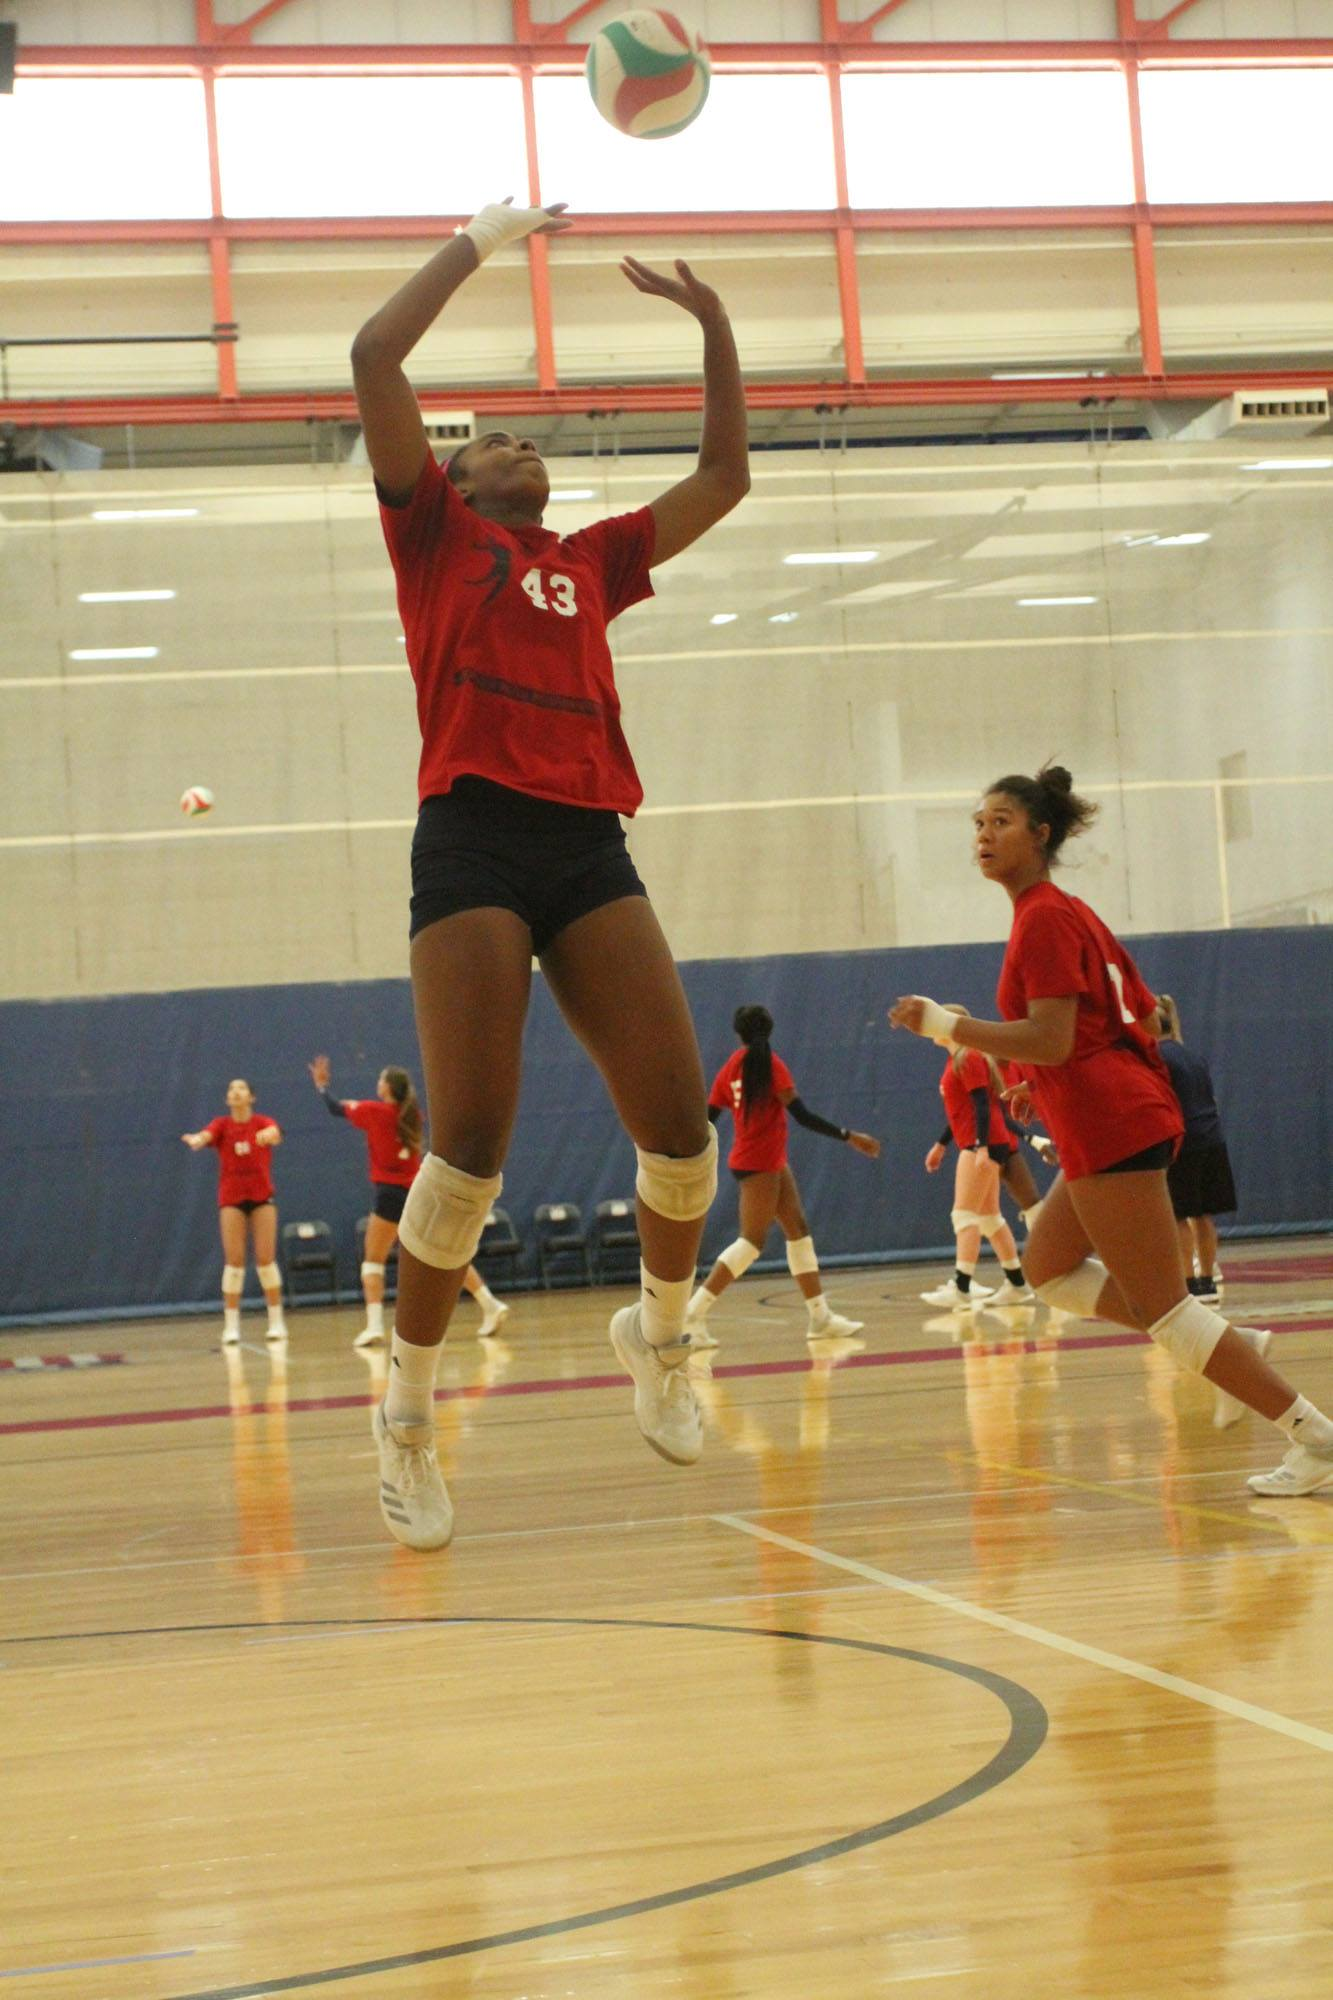 Learn the reasons why a setters volleyball sets differ in speed and height during a game which will depend on the offense the coach will have the team run.